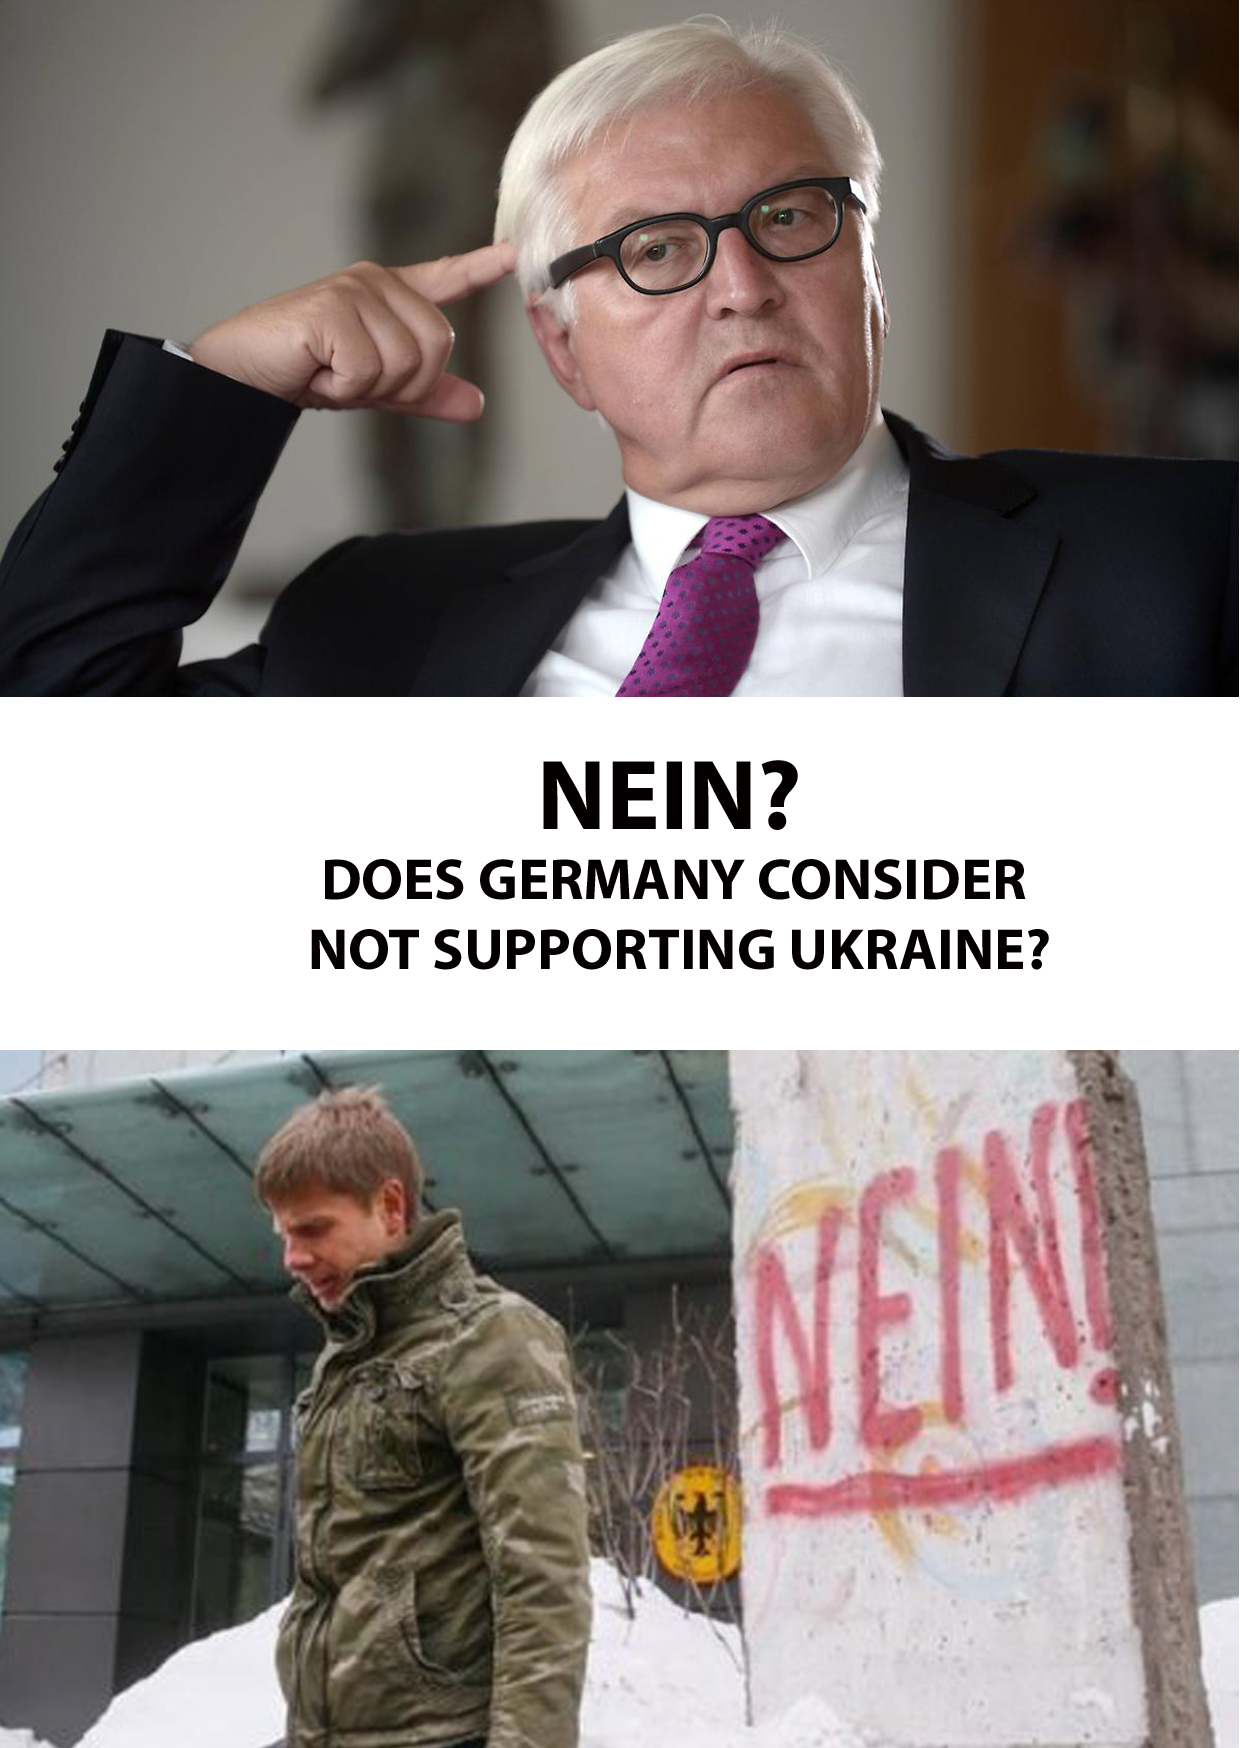 NEIN? DOES GERMANY CONSIDER NOT SUPPORTING UKRAINE?